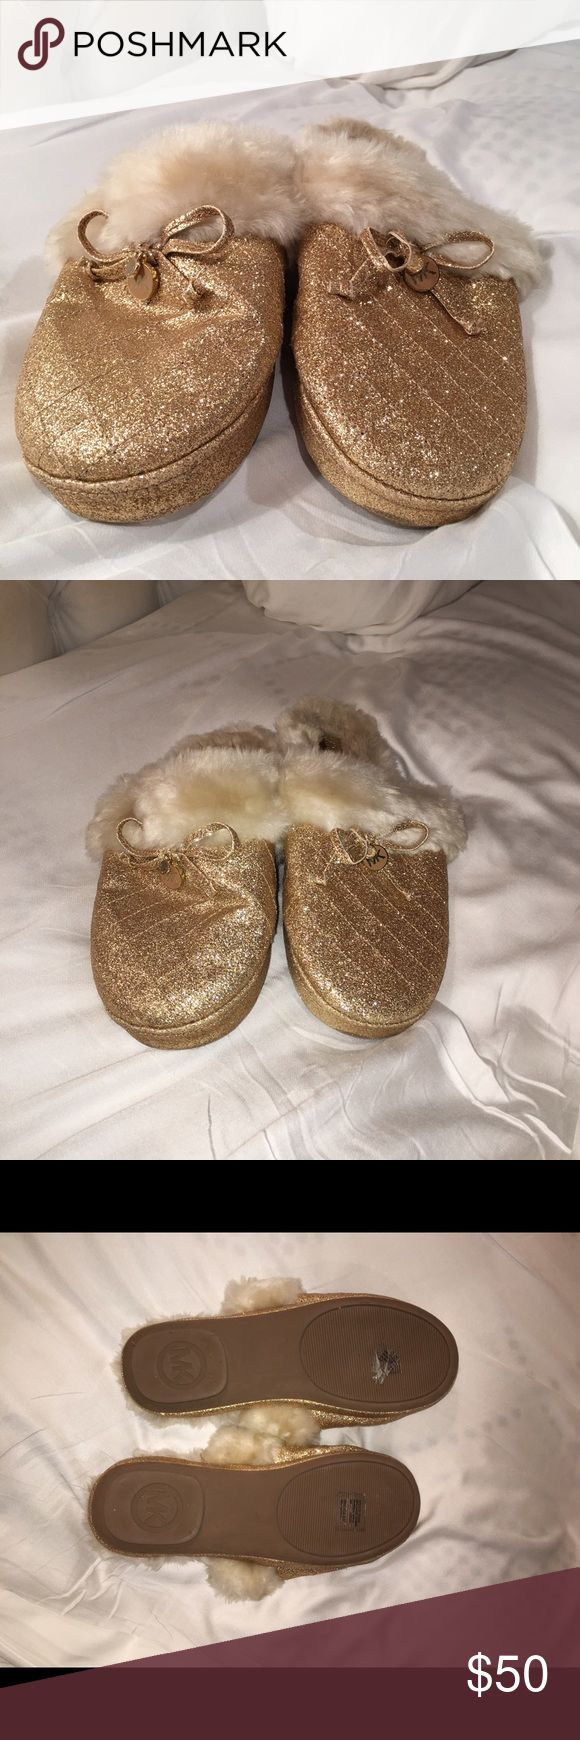 MICHAEL KORS gold glitter slippers!!! MICHAEL KORS gold glitter slippers!!! Worn only a handful of times - in great condition! Still has stickers on bottom Shoes Slippers